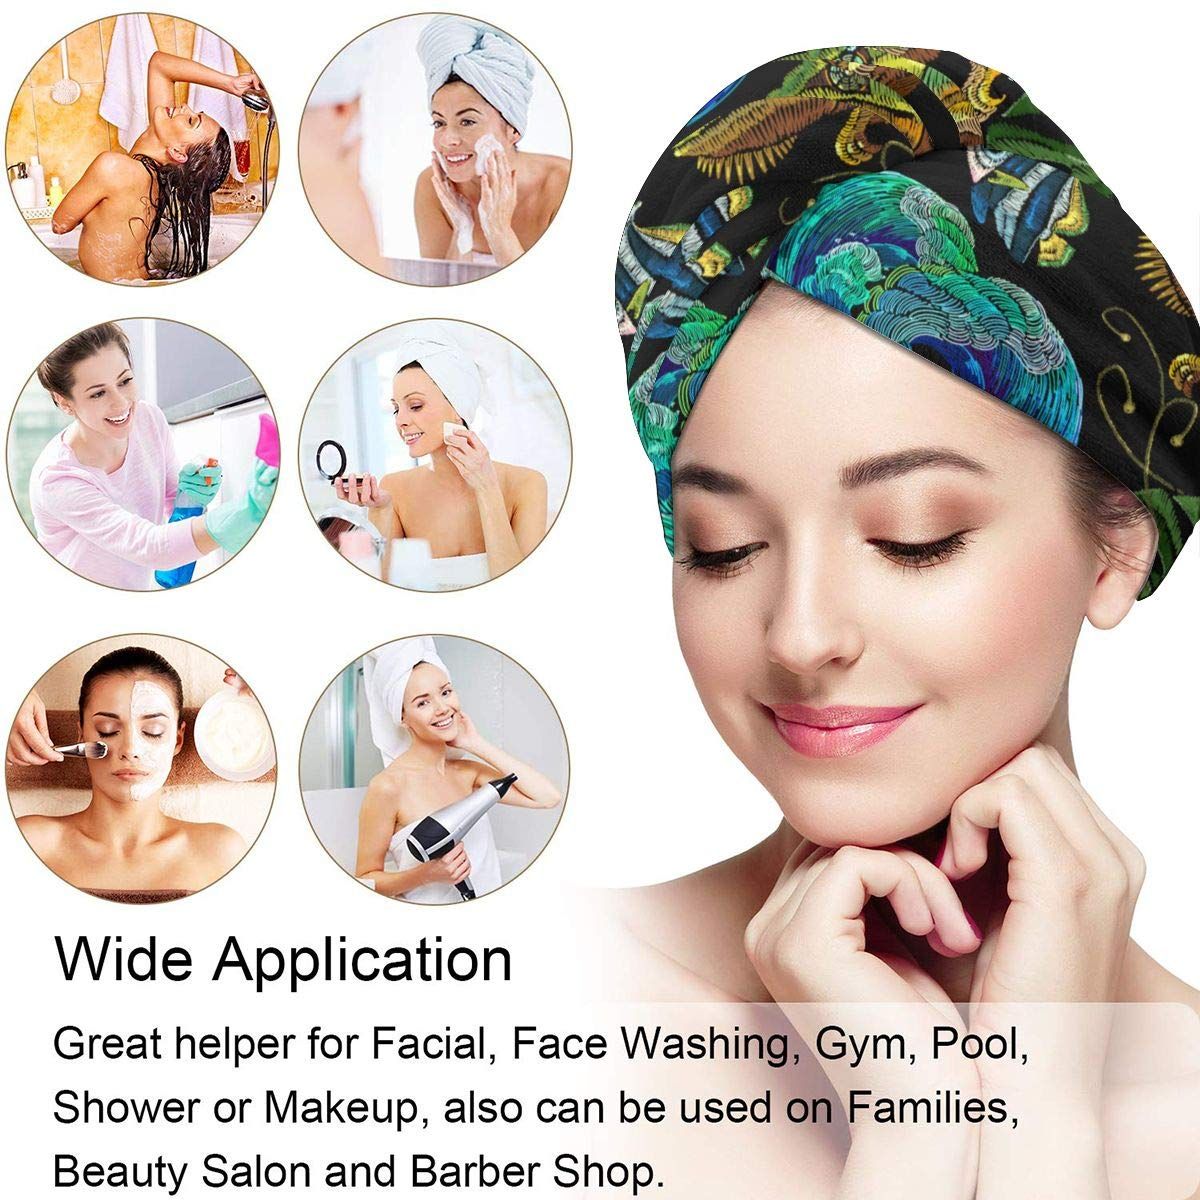 Quick Magic Dryer Super Absorbent Dry Hair Hat Embroidery Color Chameleons Sea Life Animals Hair Towel Wrap Turban Microfiber Quick Dry Hair Turban Wrap Wrapped Bath Cap